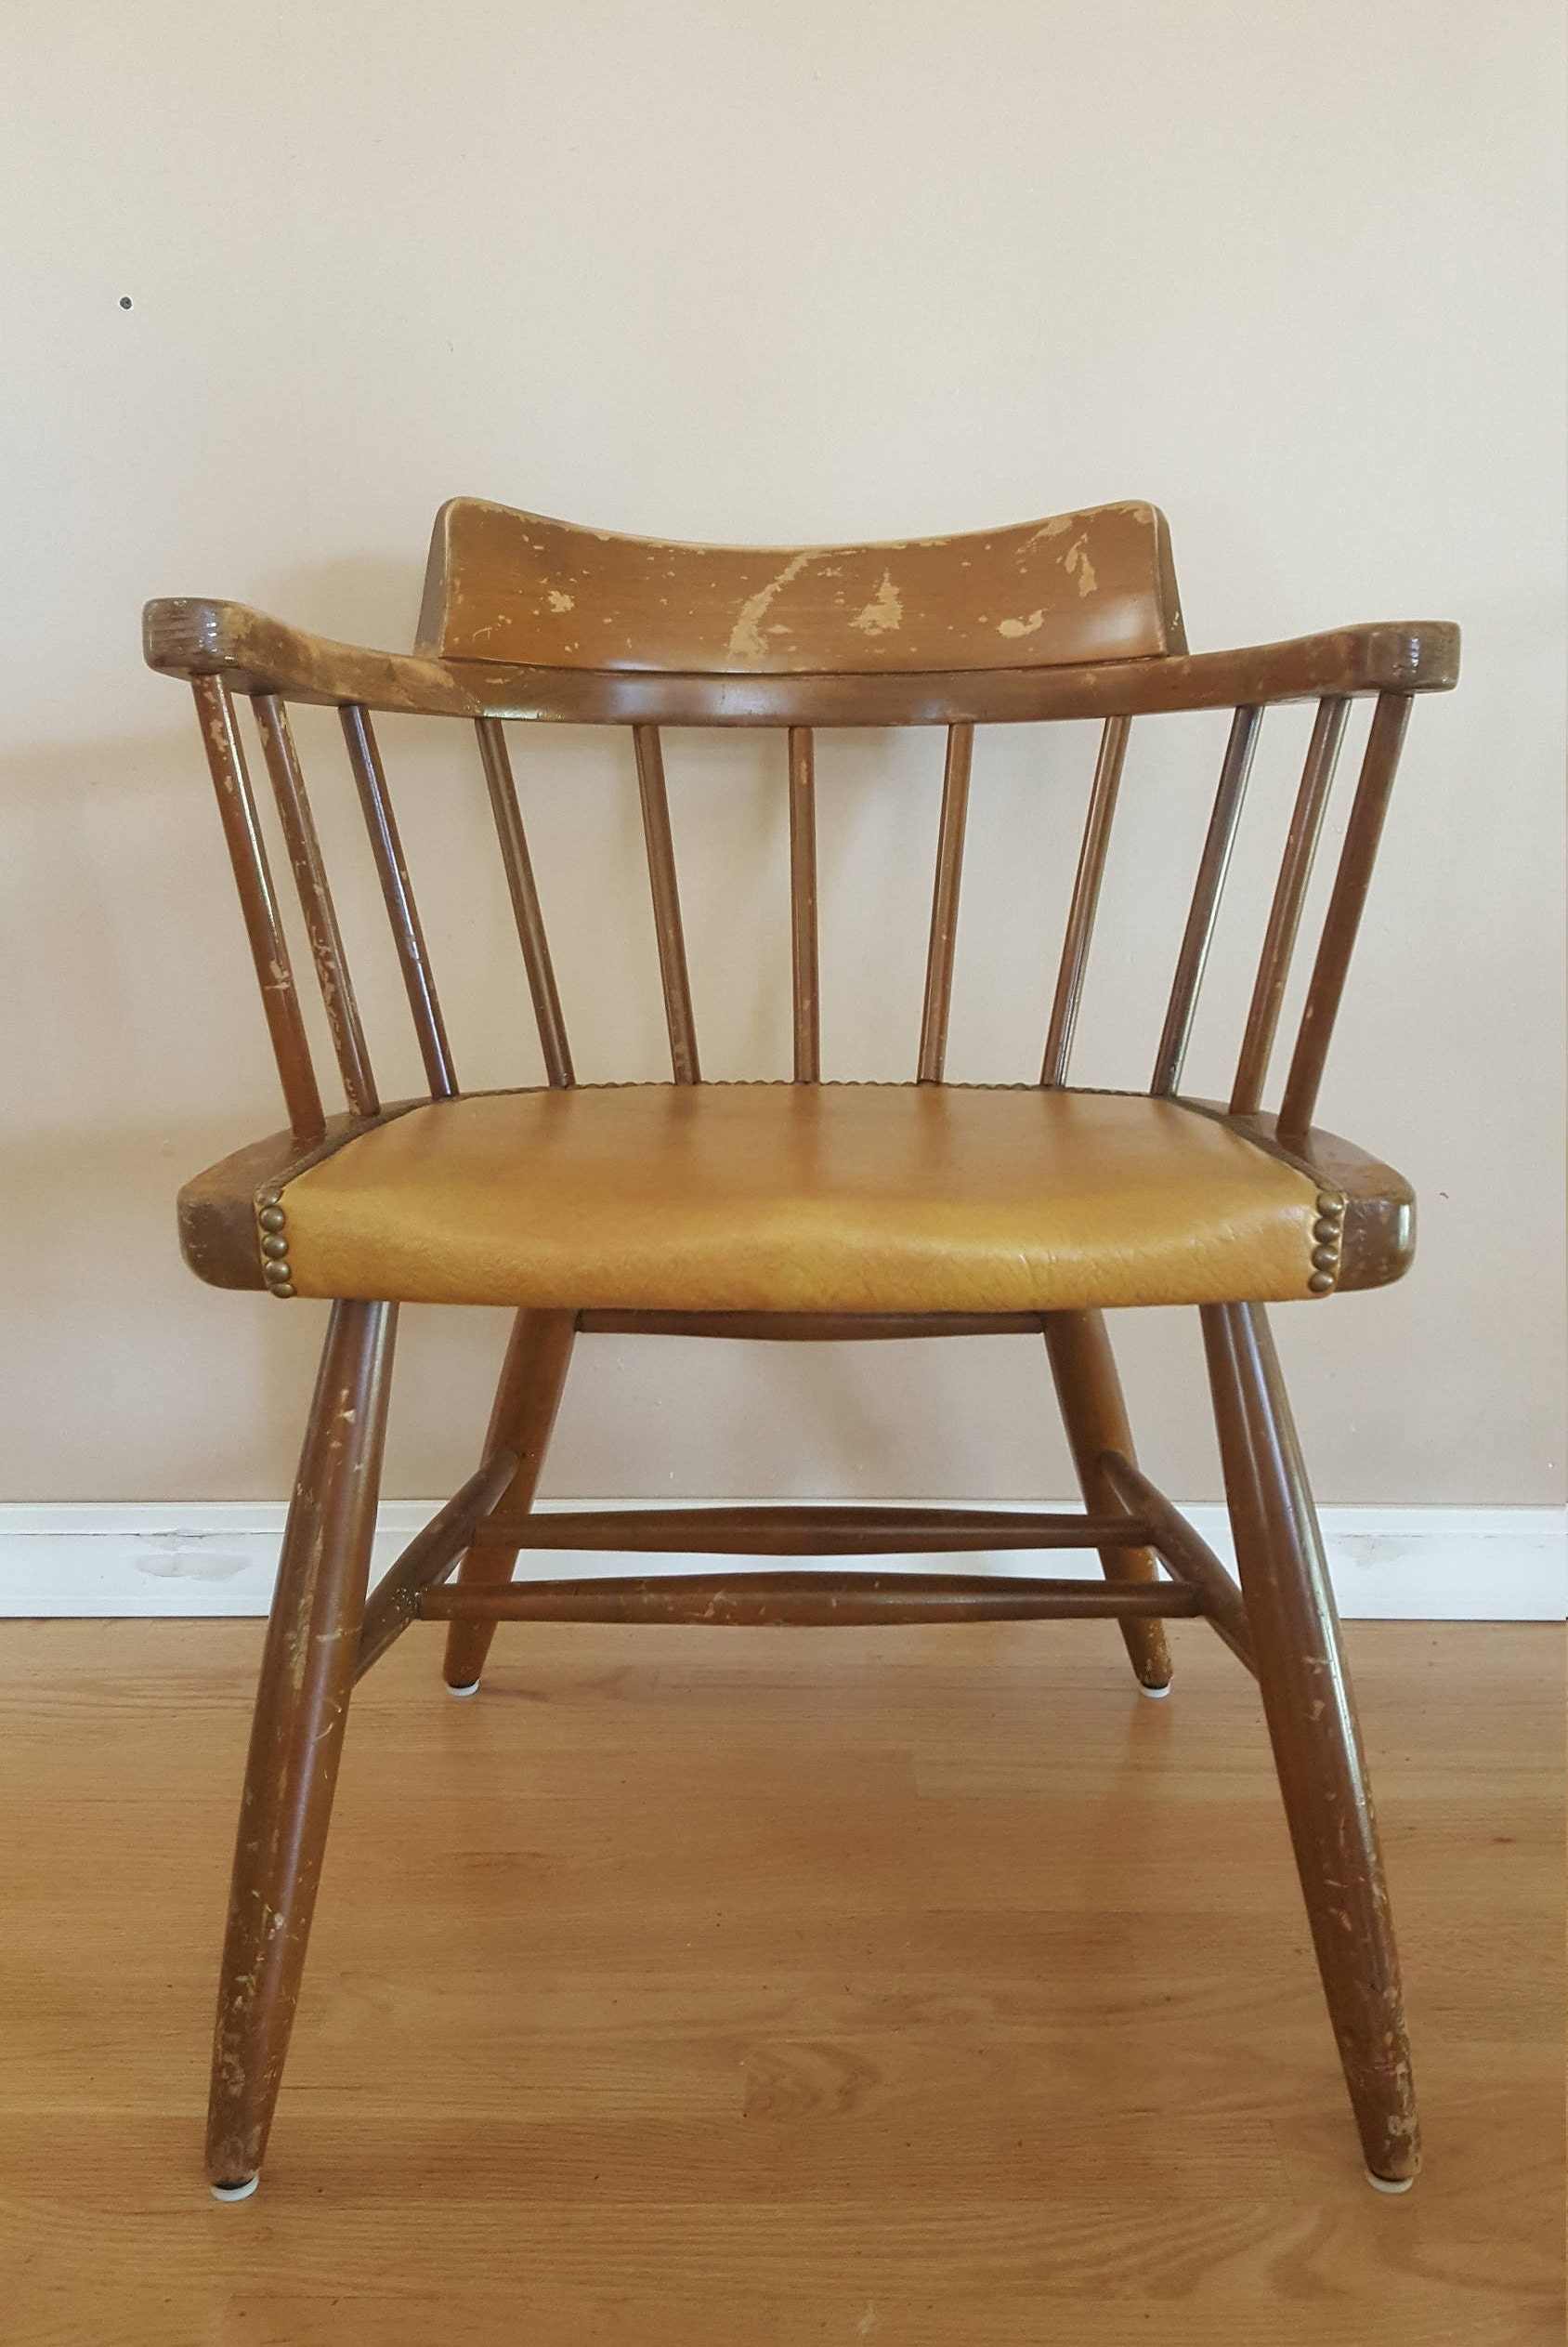 Antique Wooden Chairs >> Vintage Wood Chair Antique Wooden Chair Vintage Decor Etsy